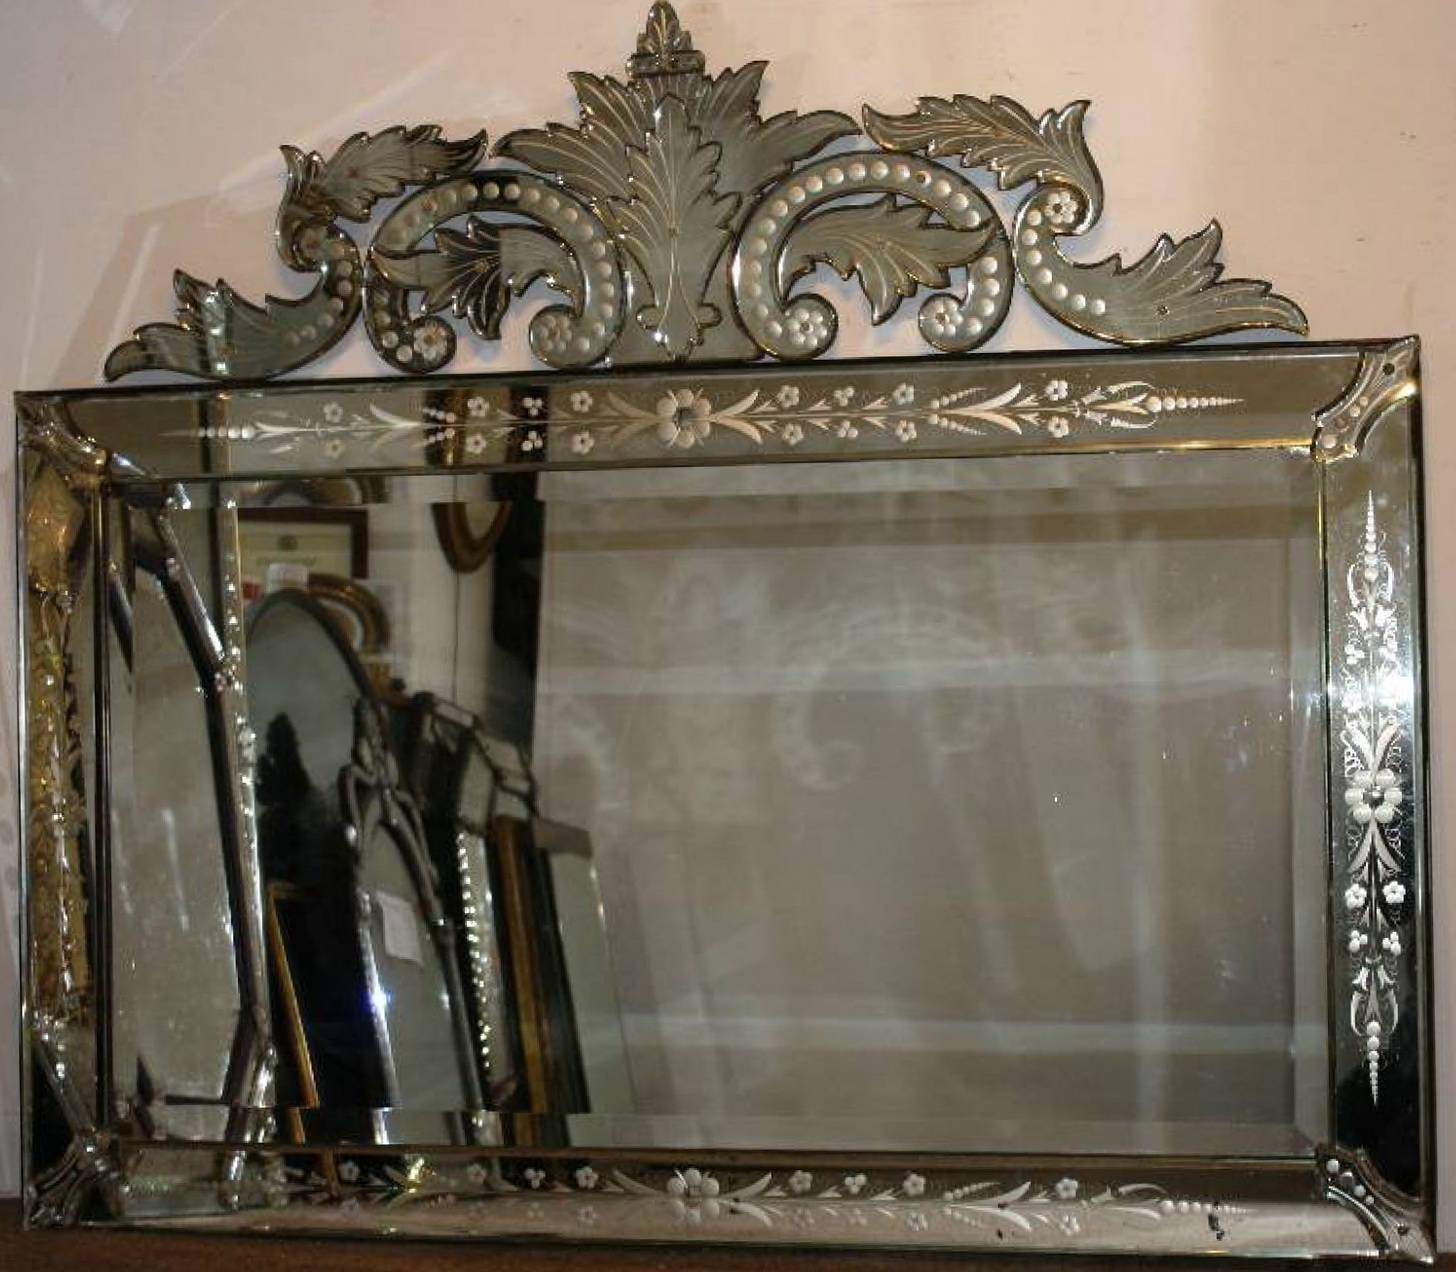 Antique Venetian Glass Mirror | Home Design Ideas with regard to Antique Venetian Glass Mirrors (Image 8 of 25)